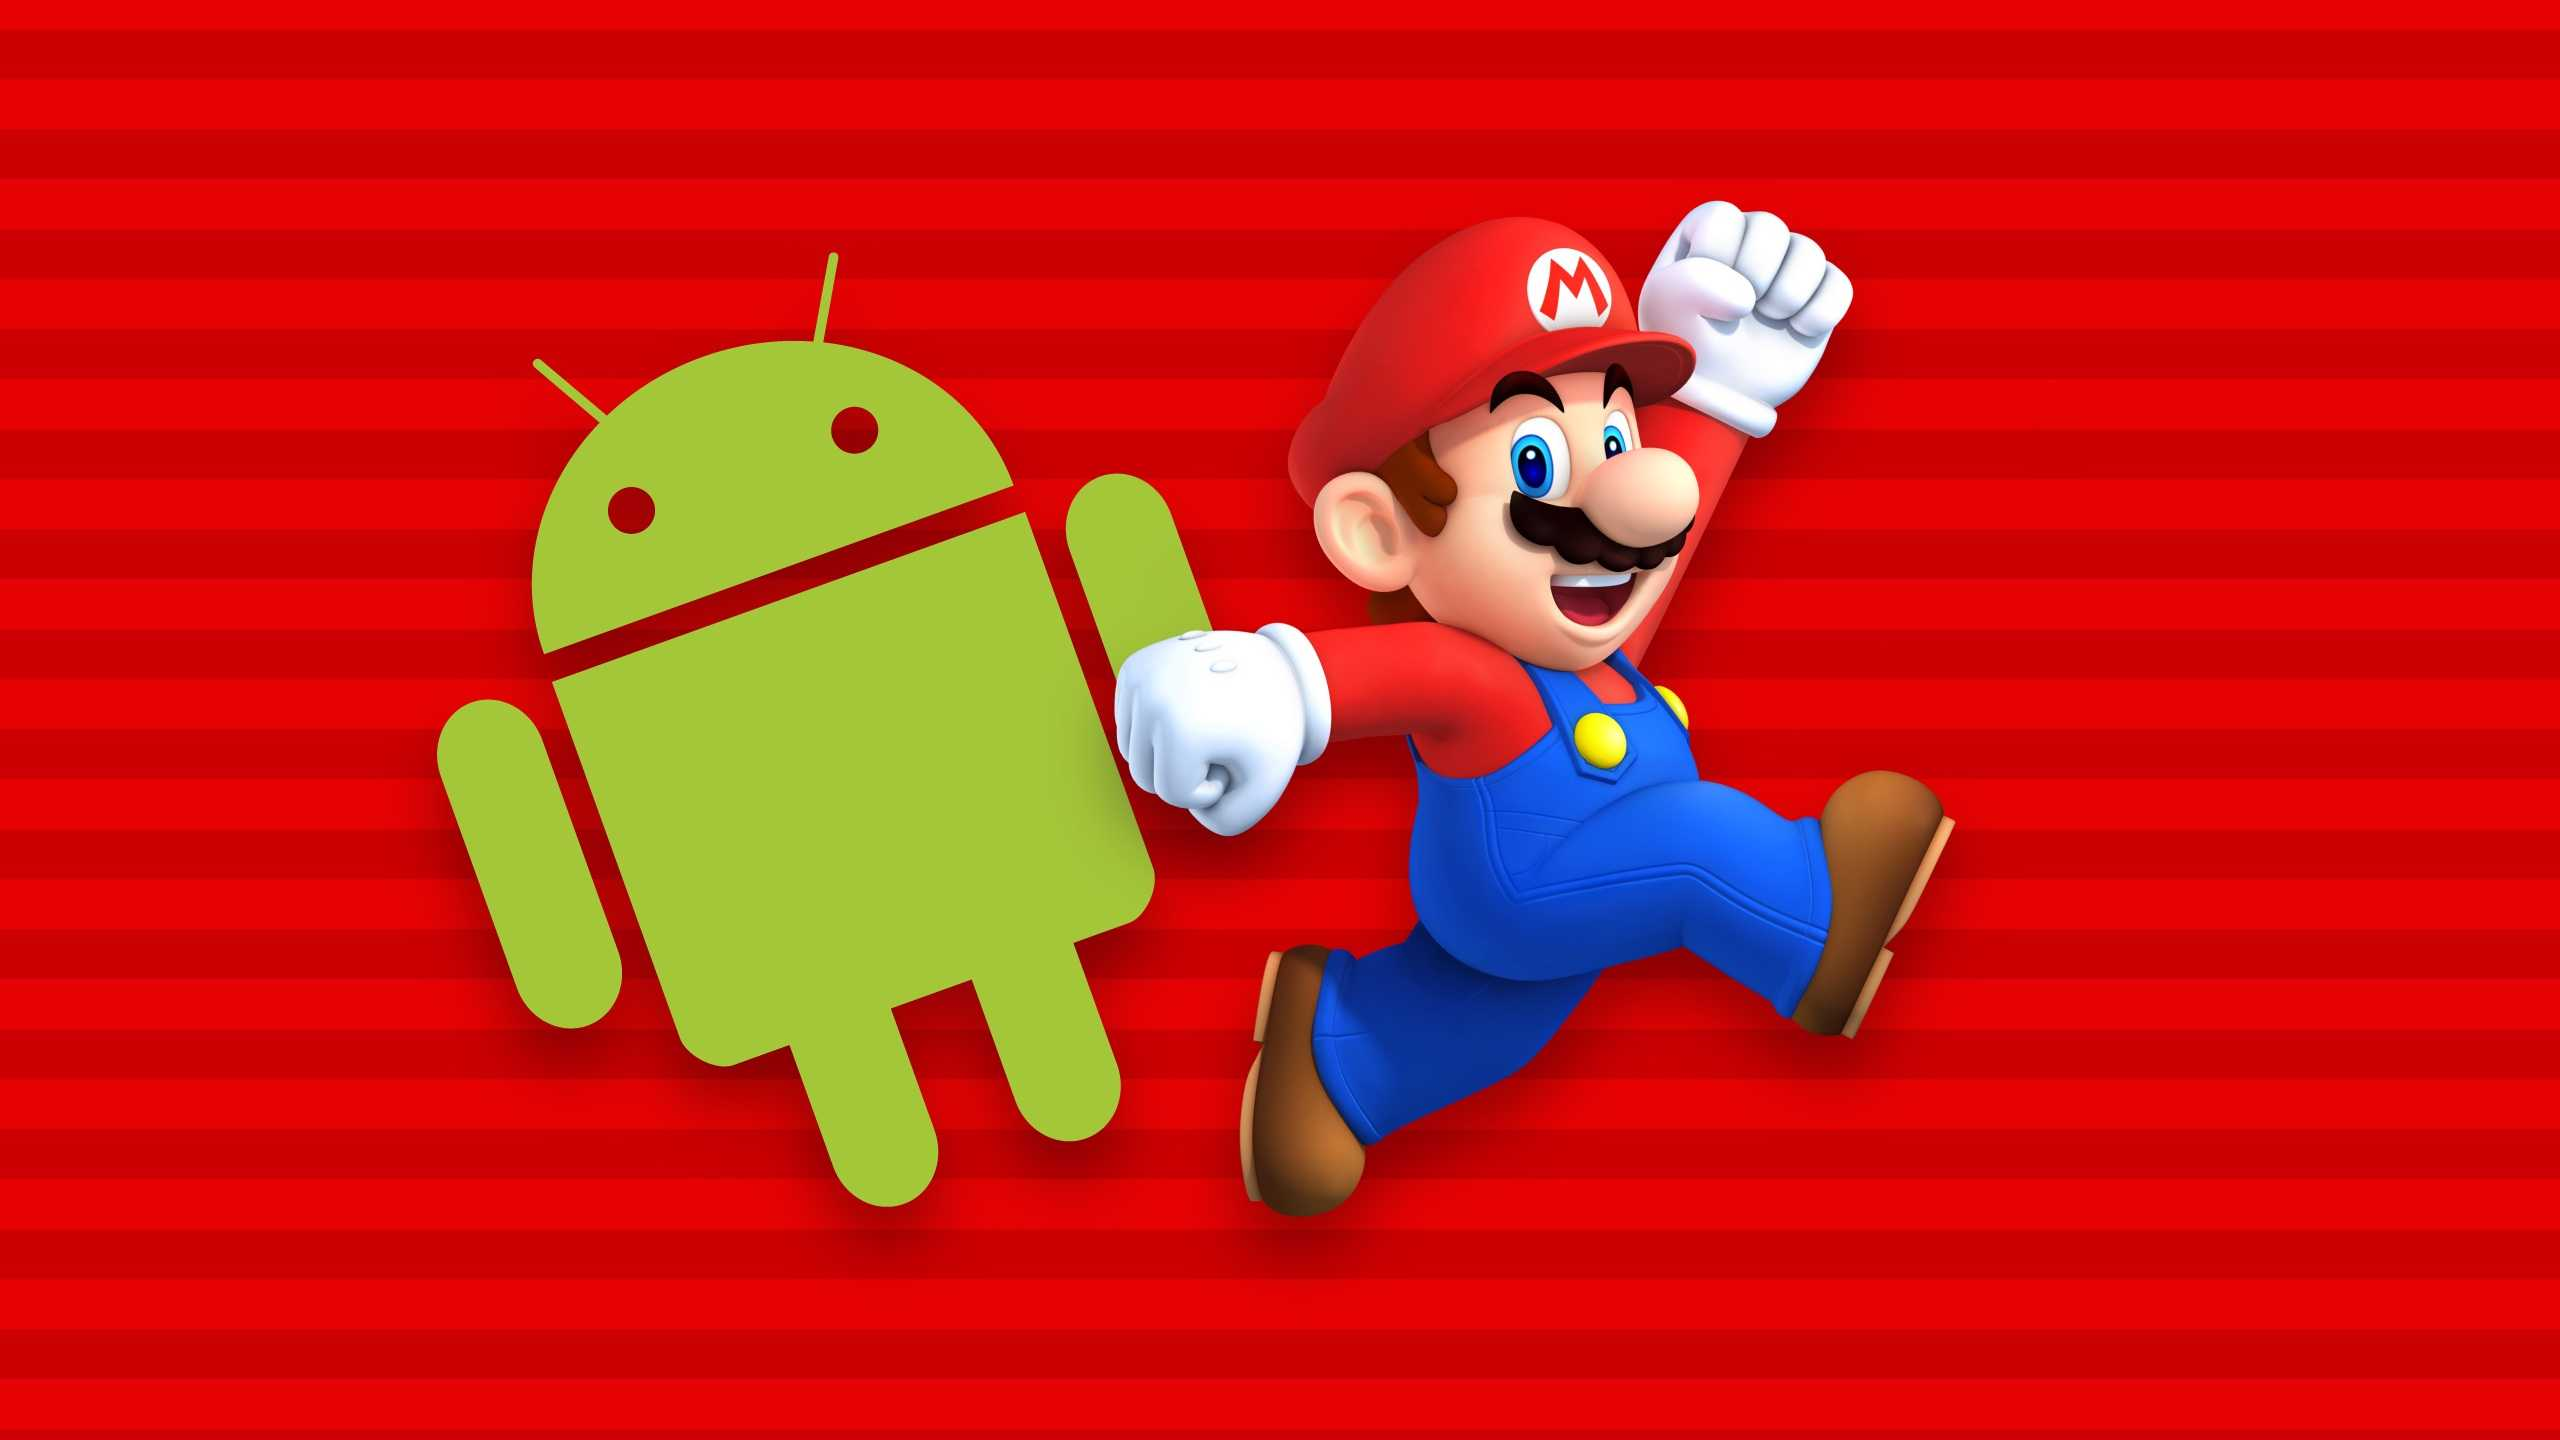 Nintendo admits Super Mario Run didn't meet sales expectations